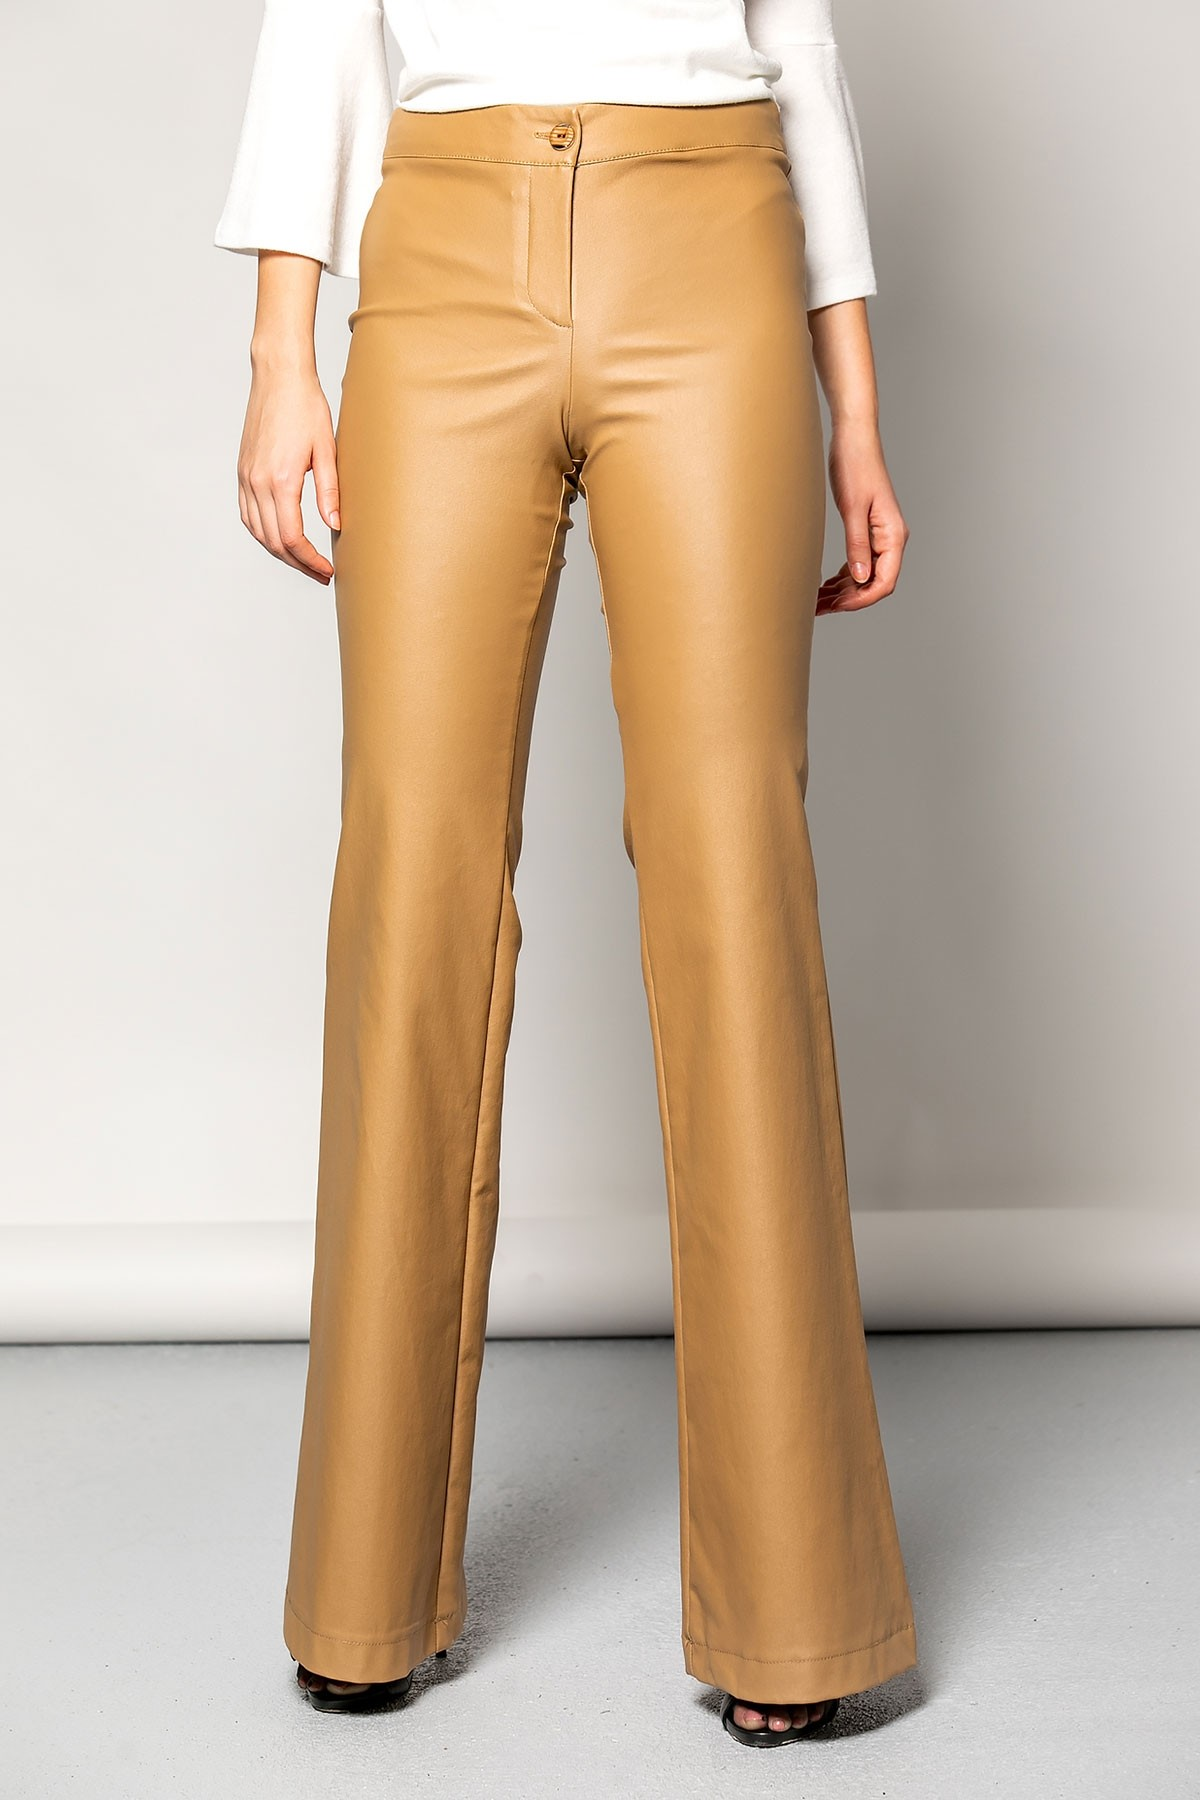 BEIGE HIGH WAIST LEATHER TROUSERS